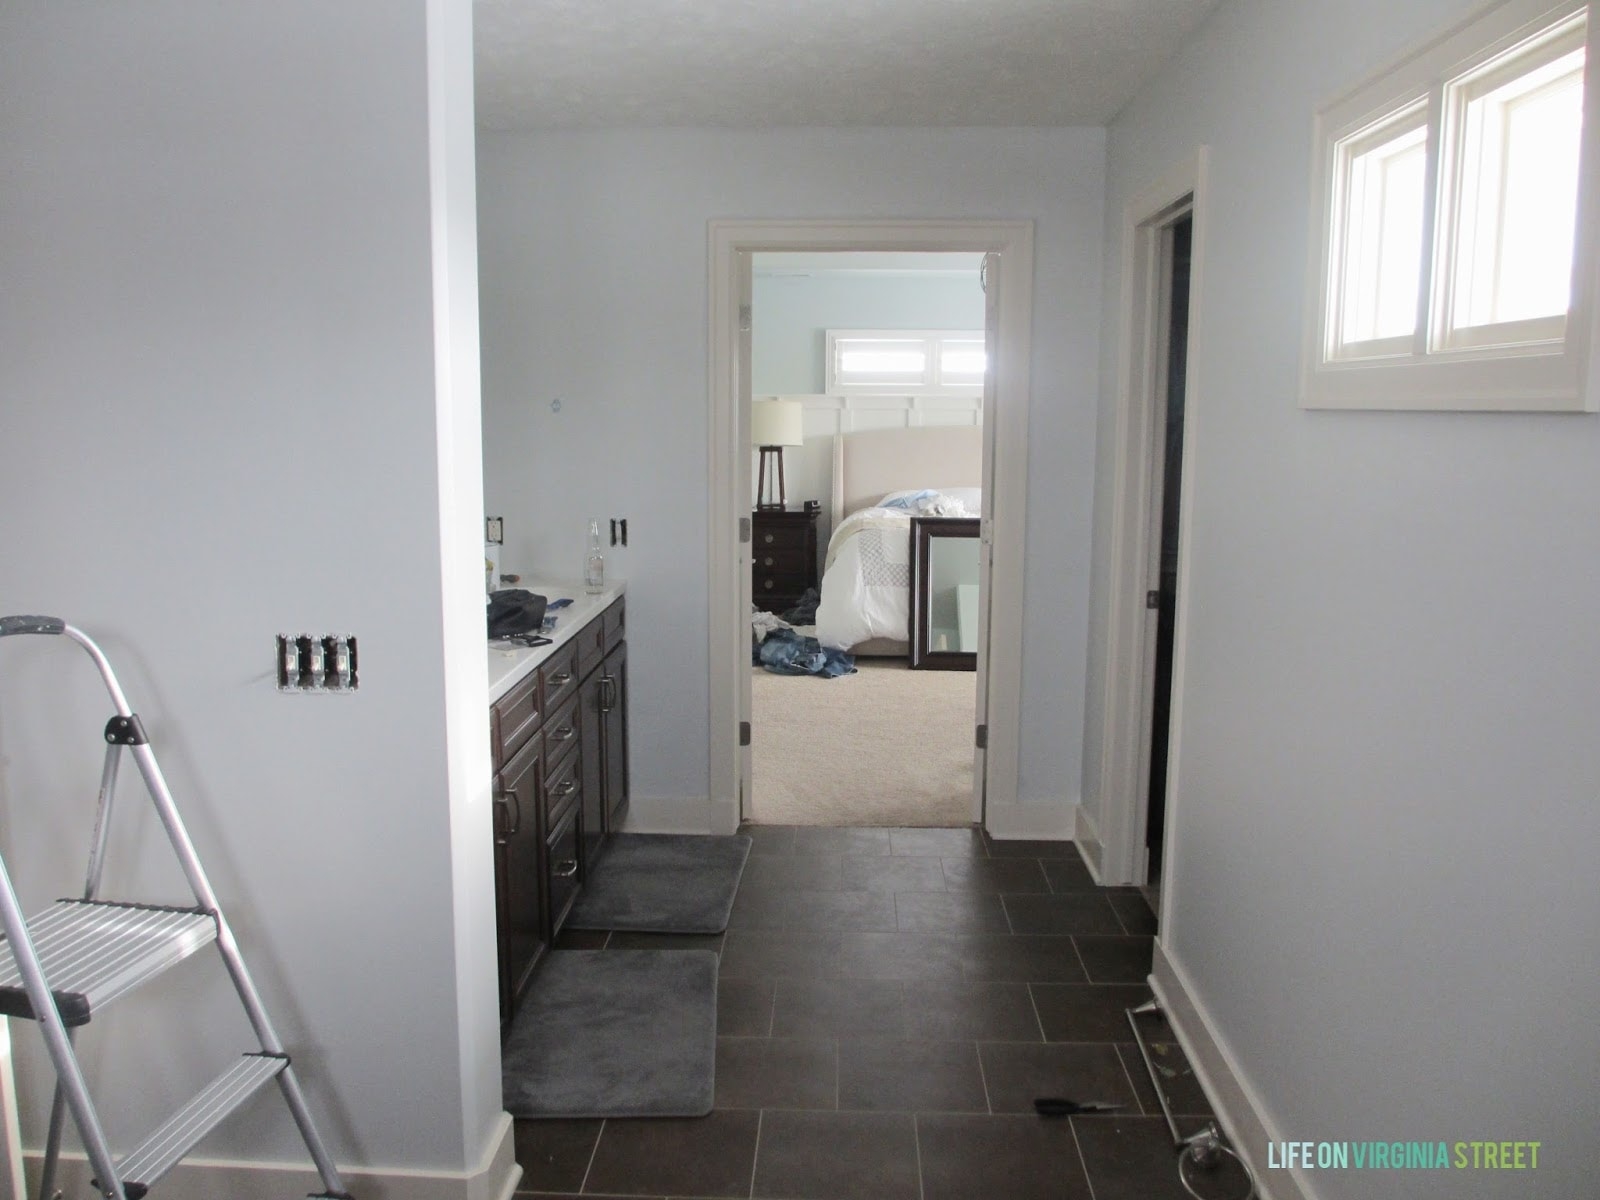 the color is somewhat reminiscent of the paint in our last bathroom behr light french gray but this has less blue in it and i believe this will look even